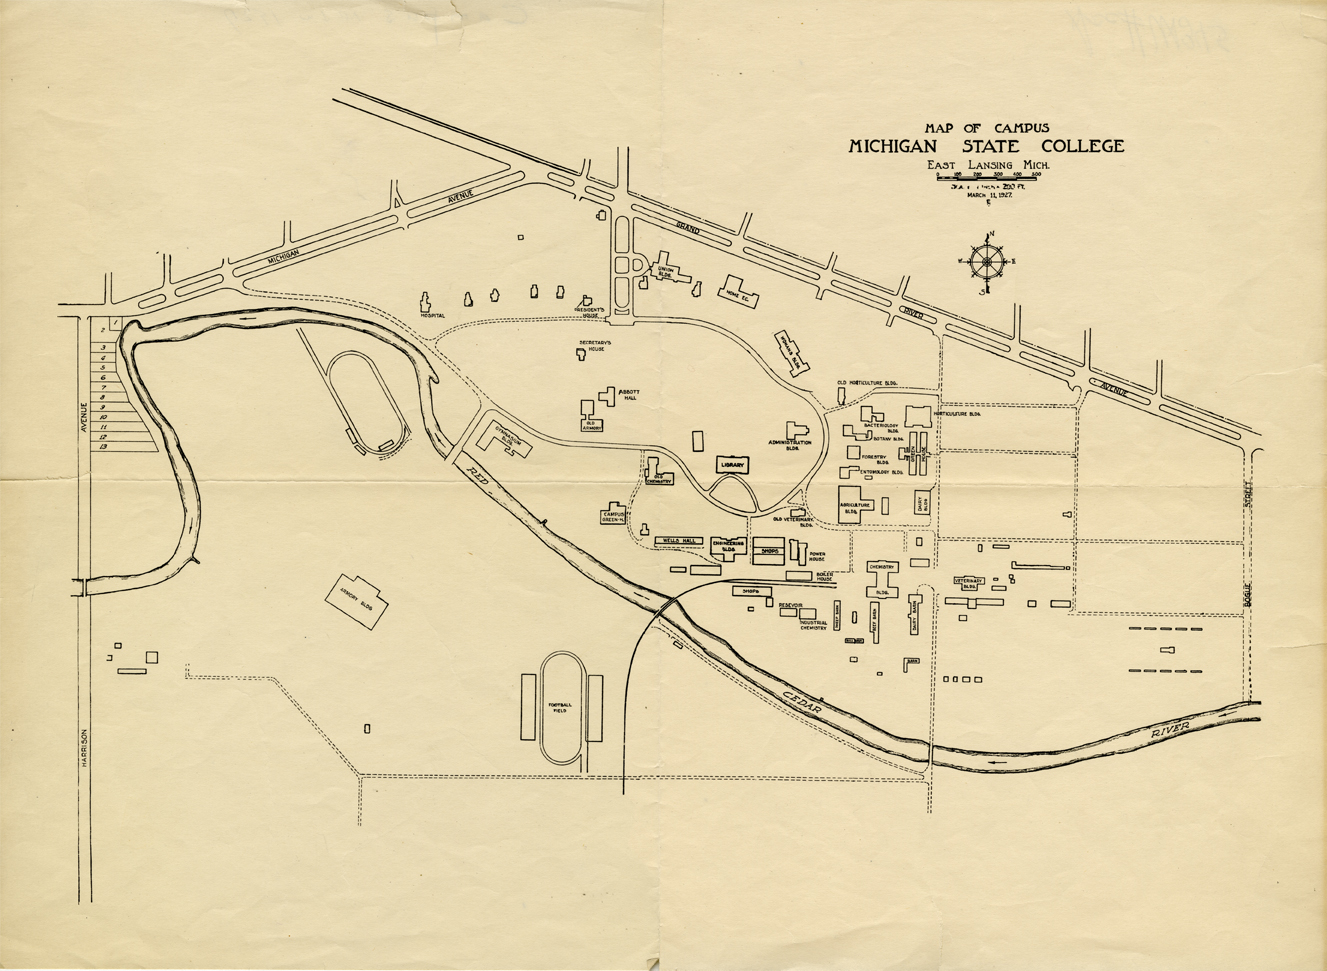 Map of MSU campus and buildings, 1927